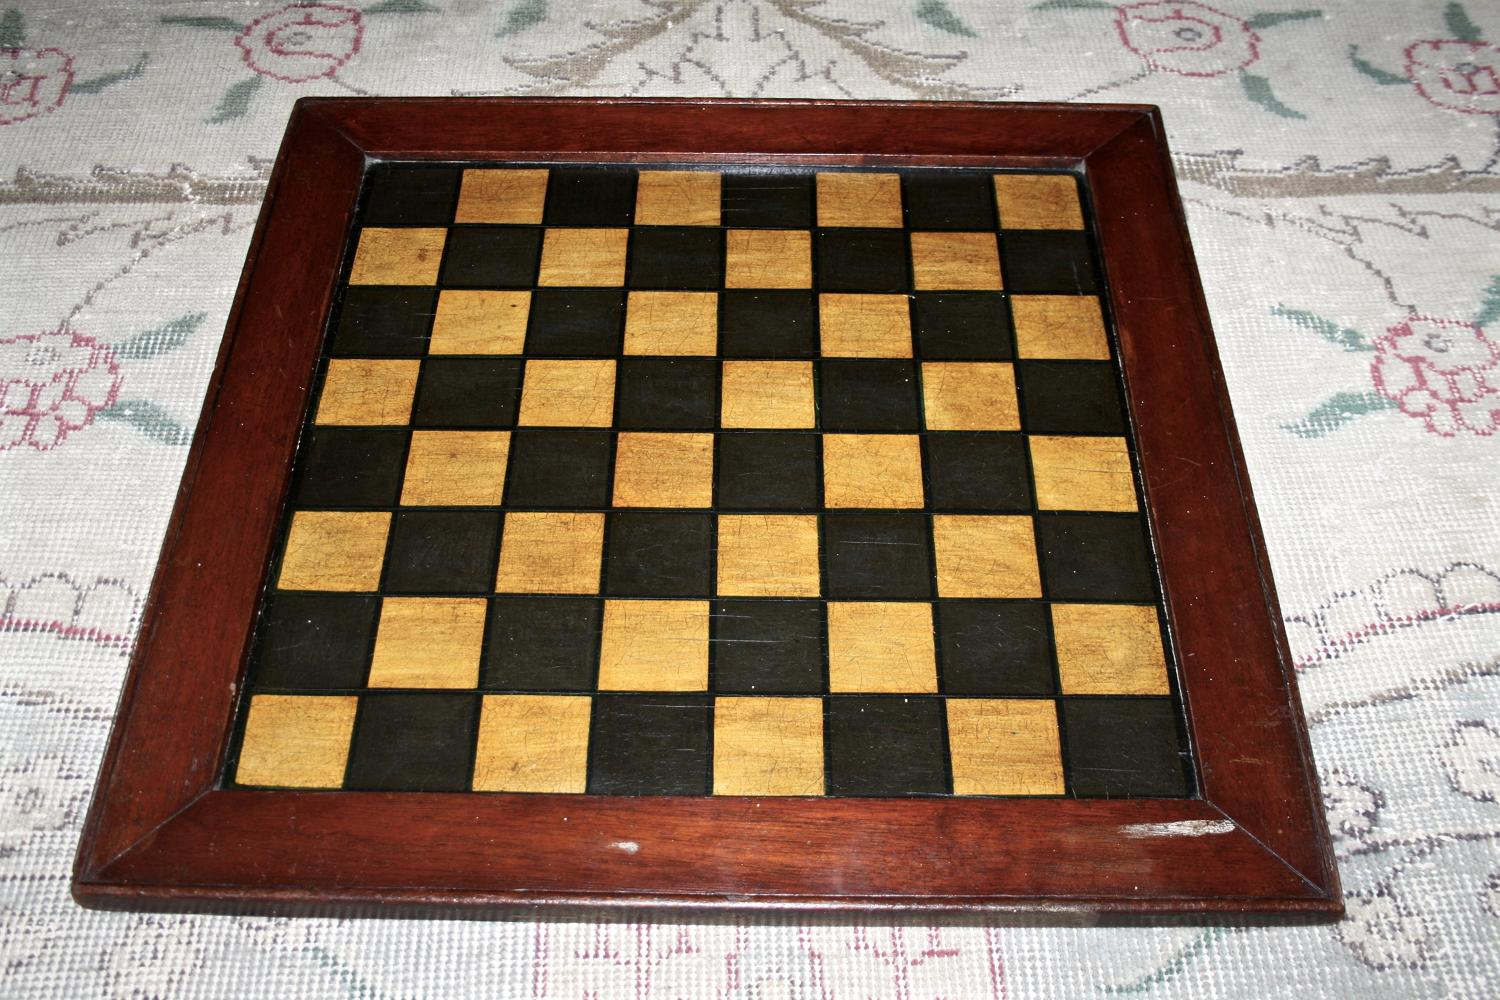 Chessboard with mahogany frame